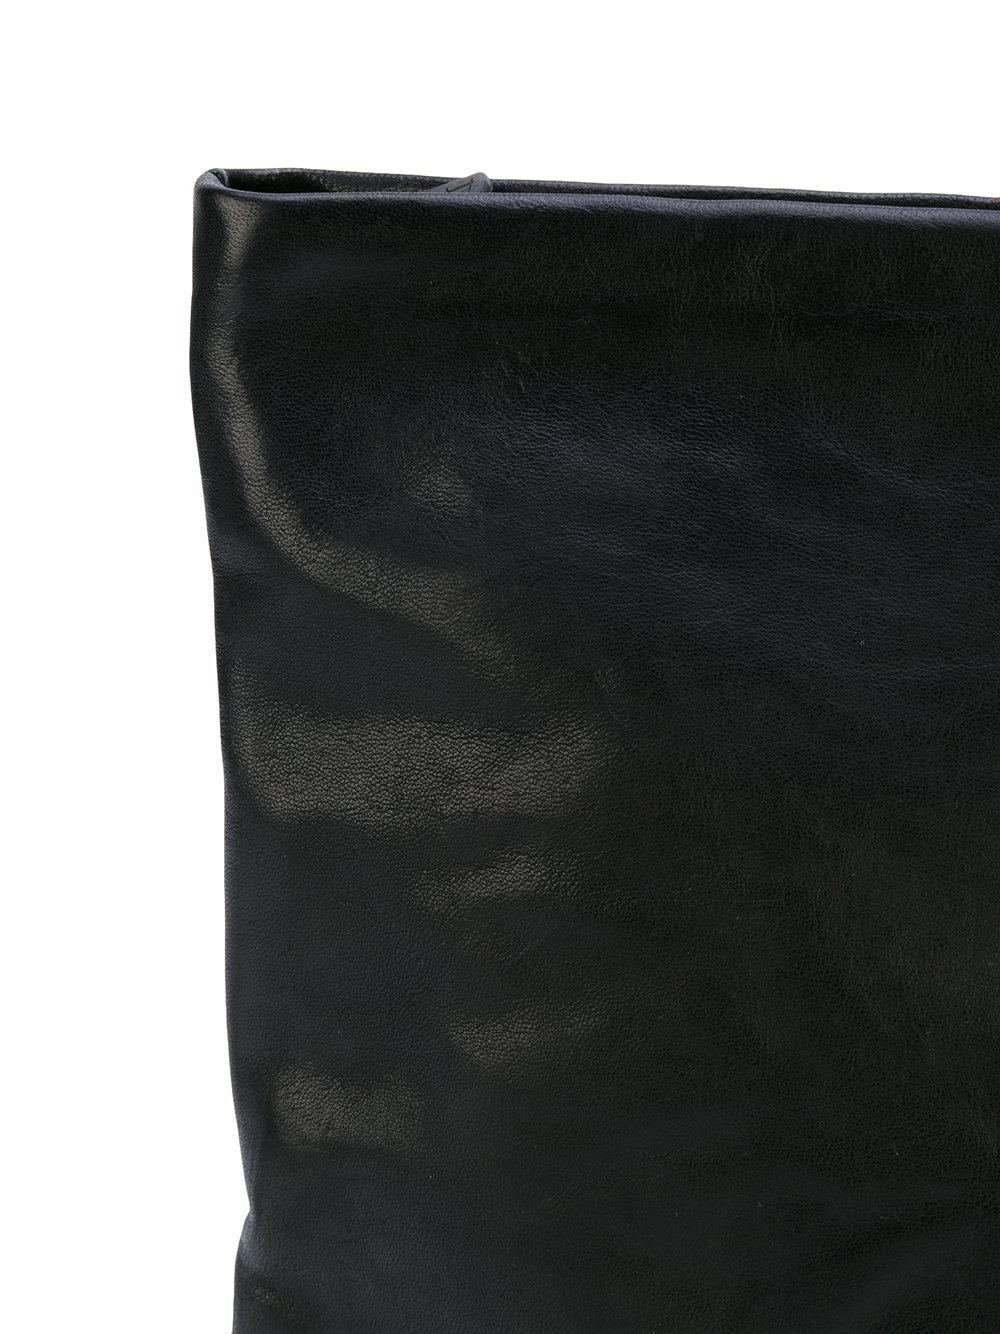 The Last Conspiracy large waxed clutch Free Shipping Top Quality Outlet Perfect Clearance Cost J7epukZwK